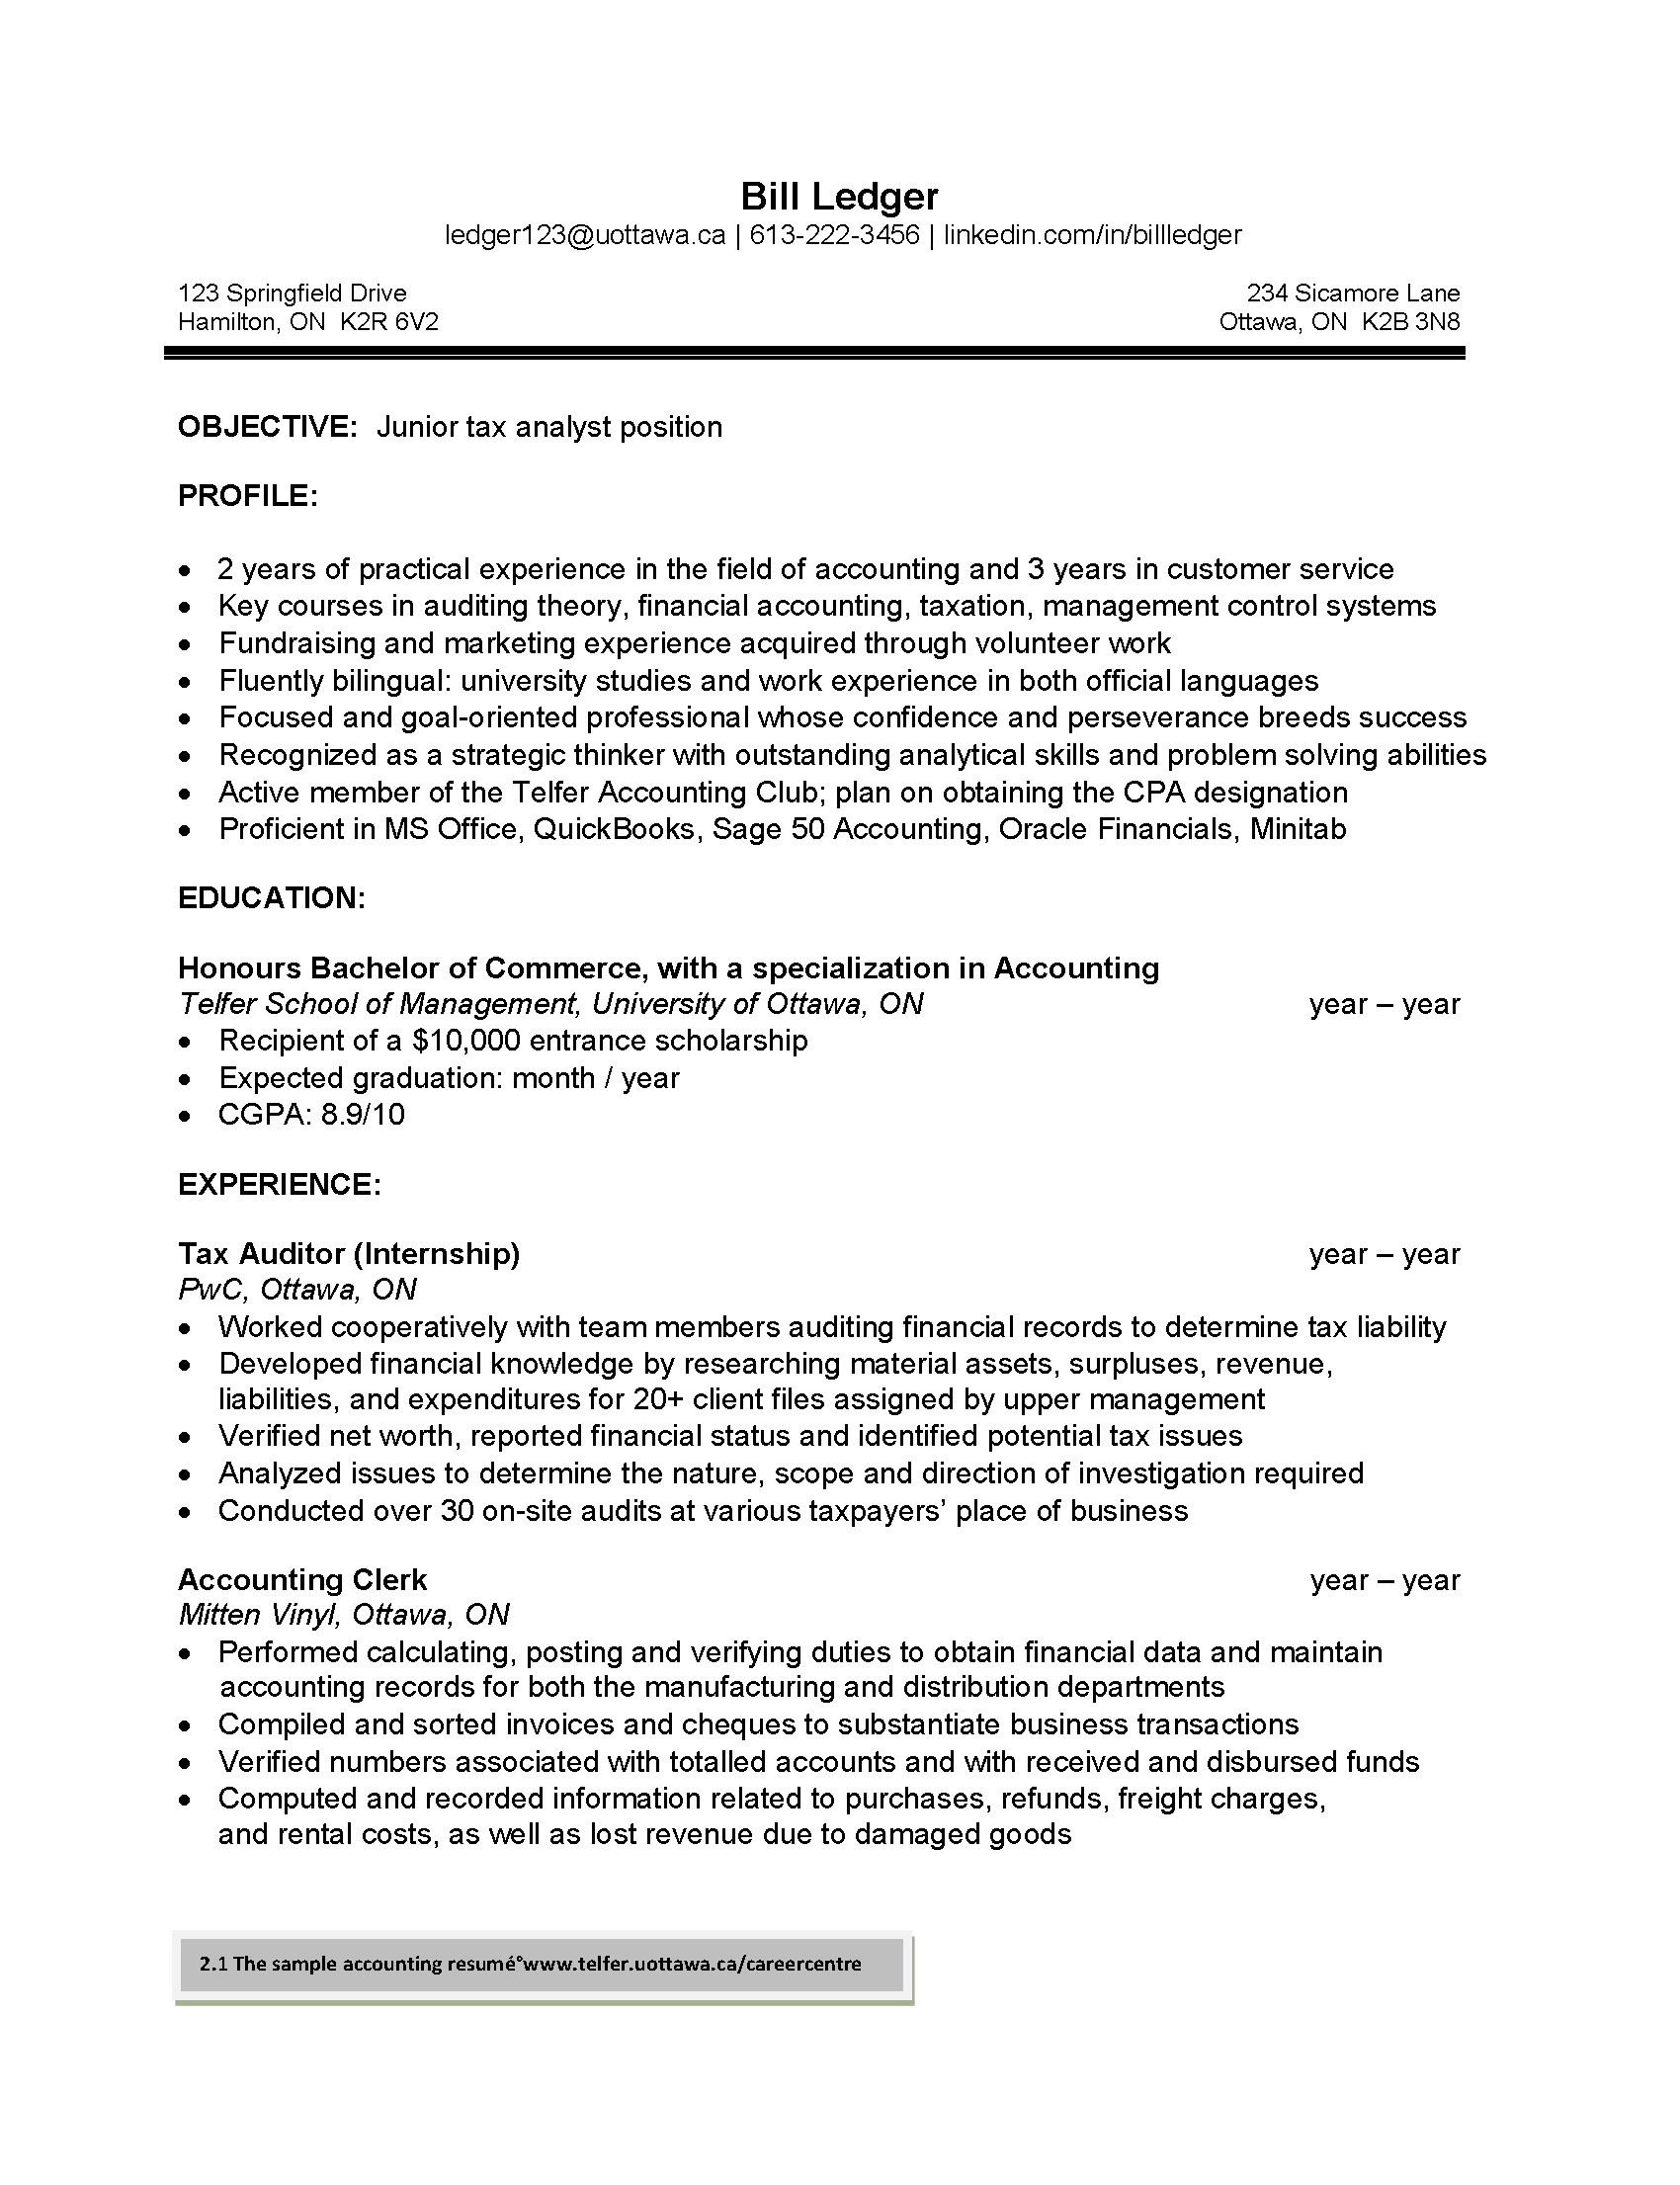 Resumé - Telfer School of Management